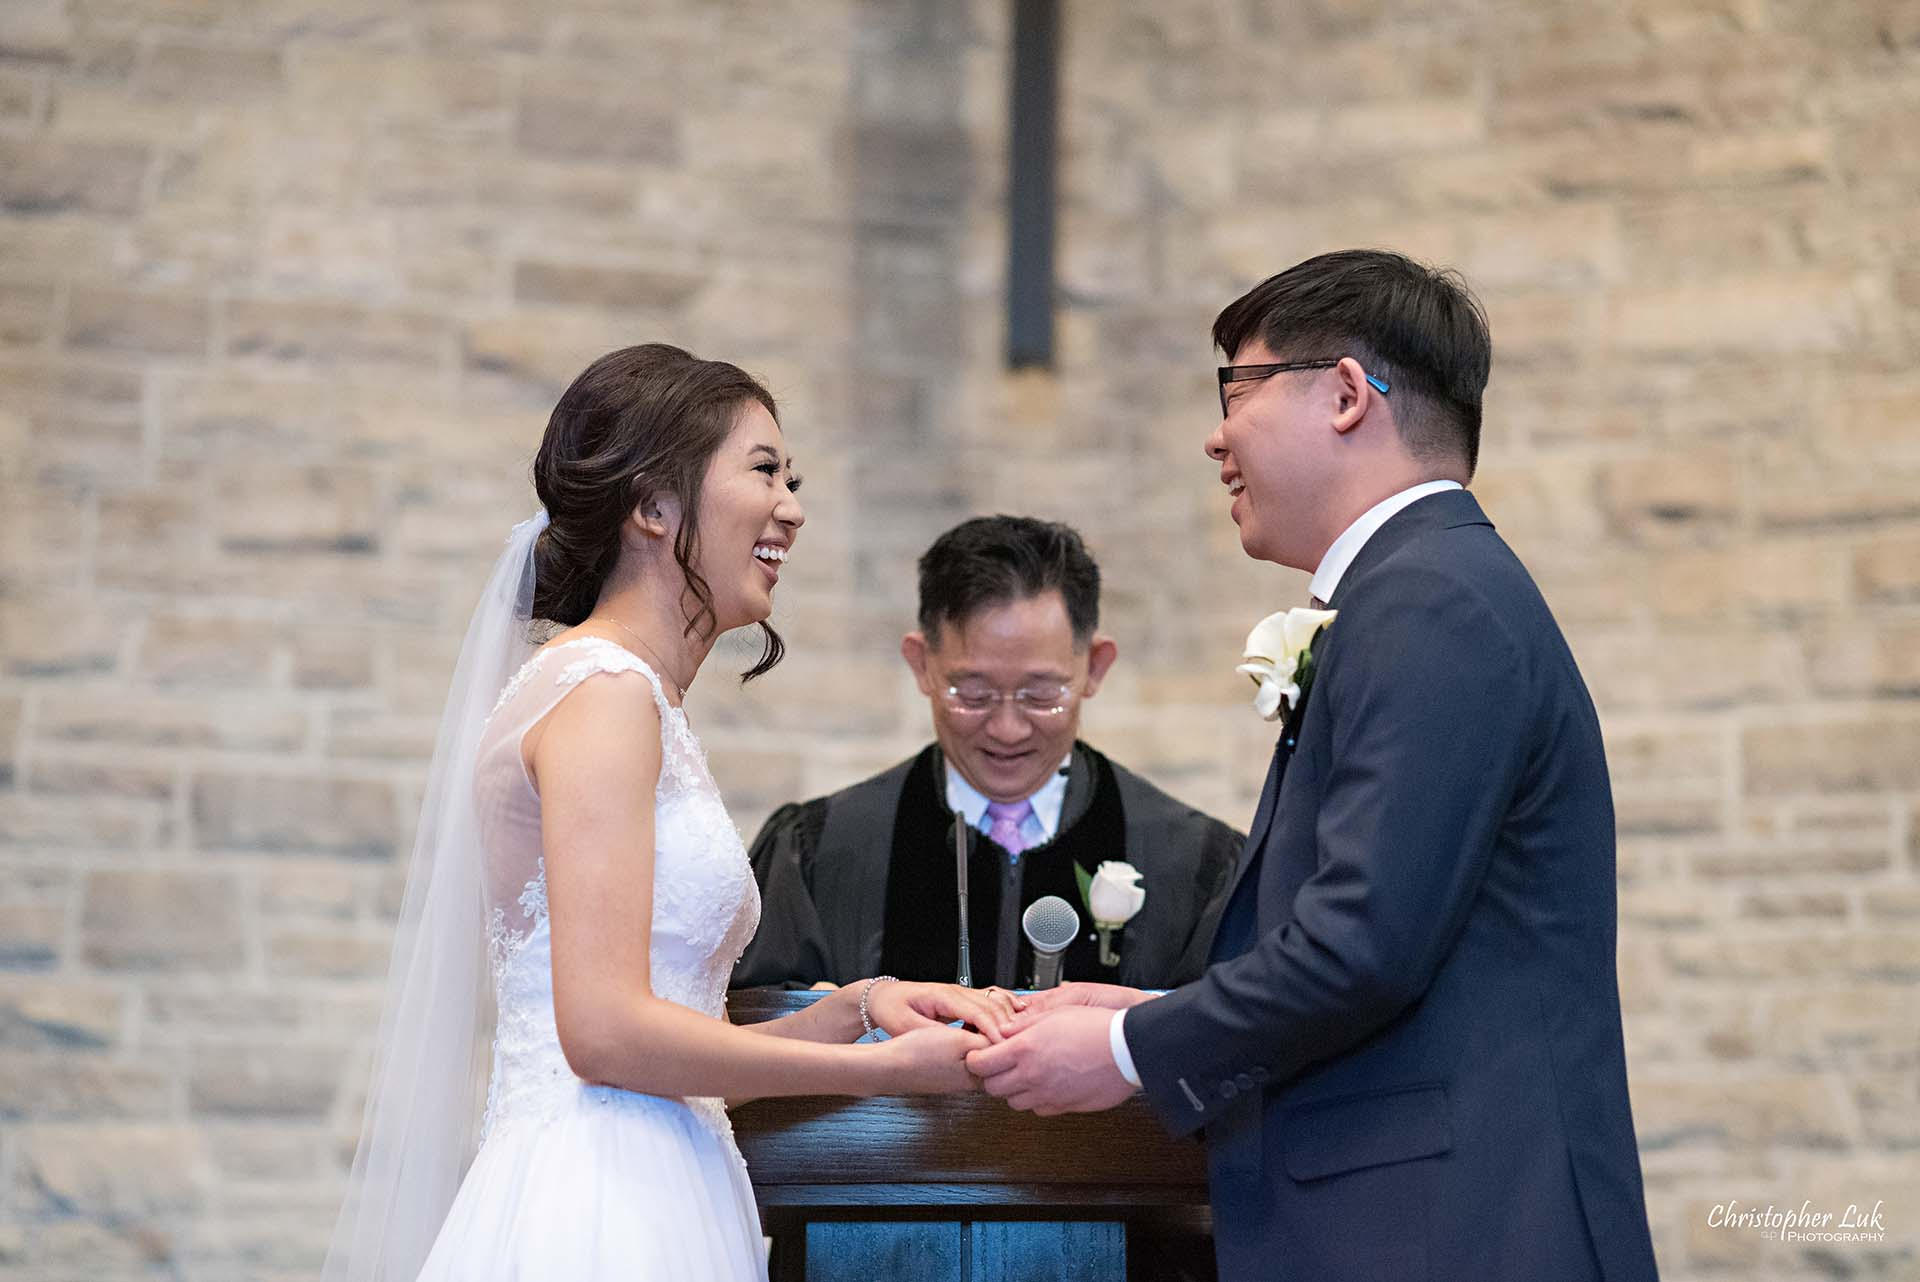 Christopher Luk Toronto Wedding Photographer - Natural Candid Photojournalistic Bride Groom Immanuel Baptist Church Ceremony Altar Vows Laugh Smile